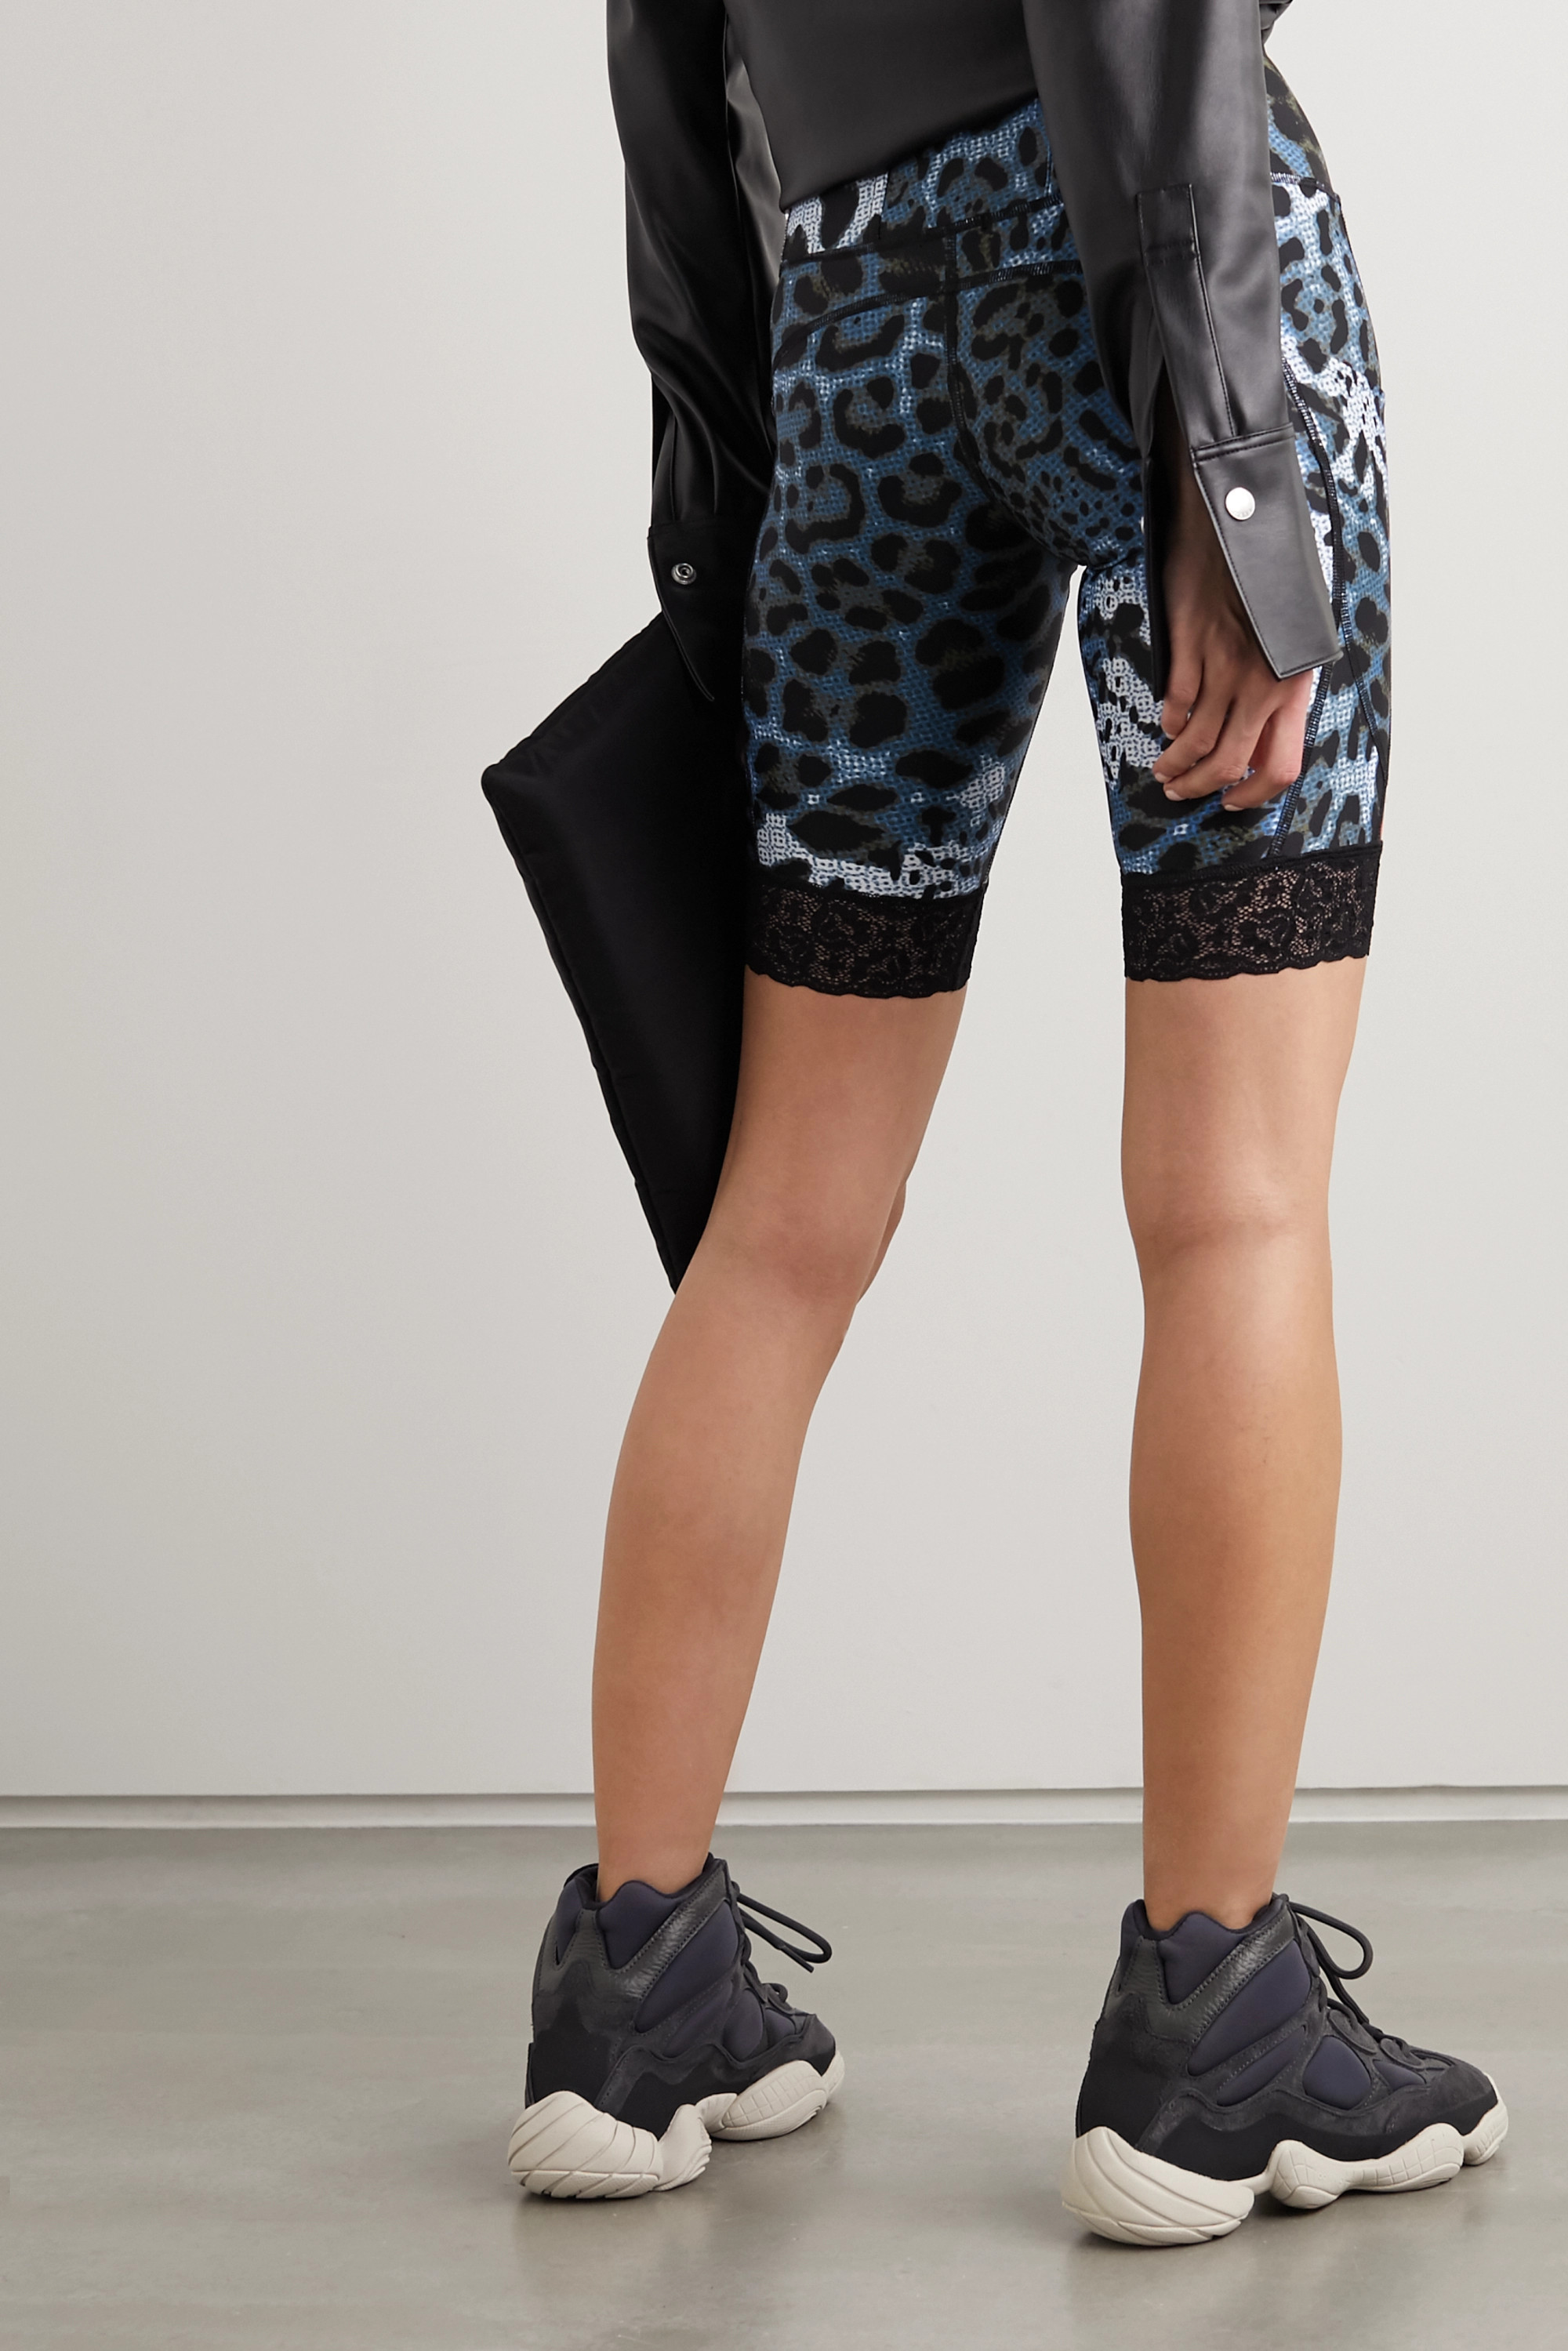 Twin Fantasy Lace-trimmed paneled animal-print stretch shorts